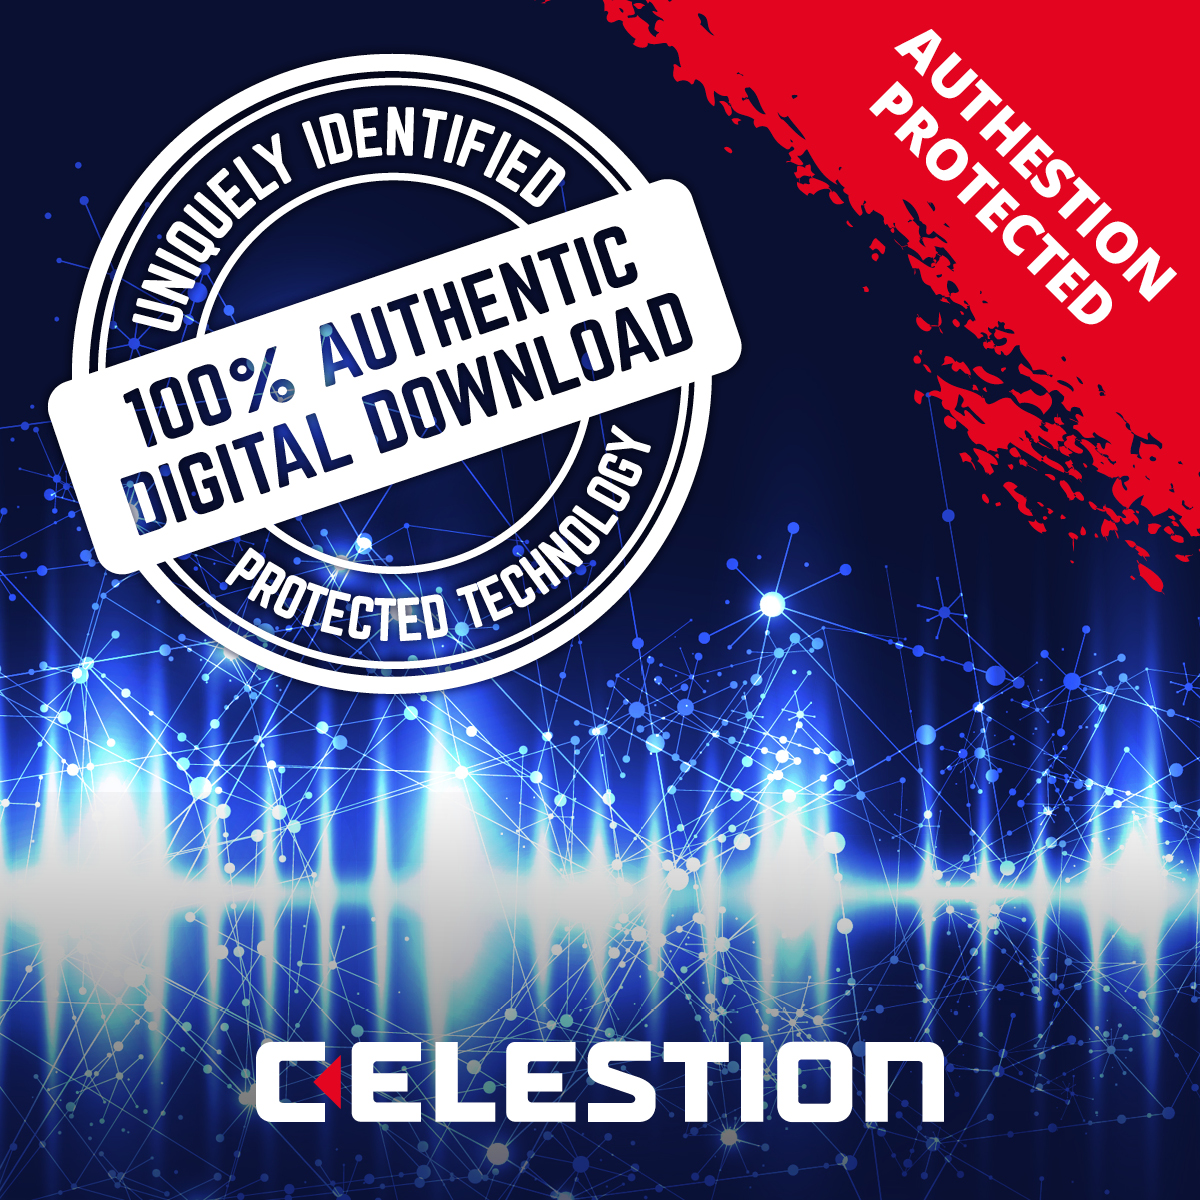 Authestion marking, protected digital downloads